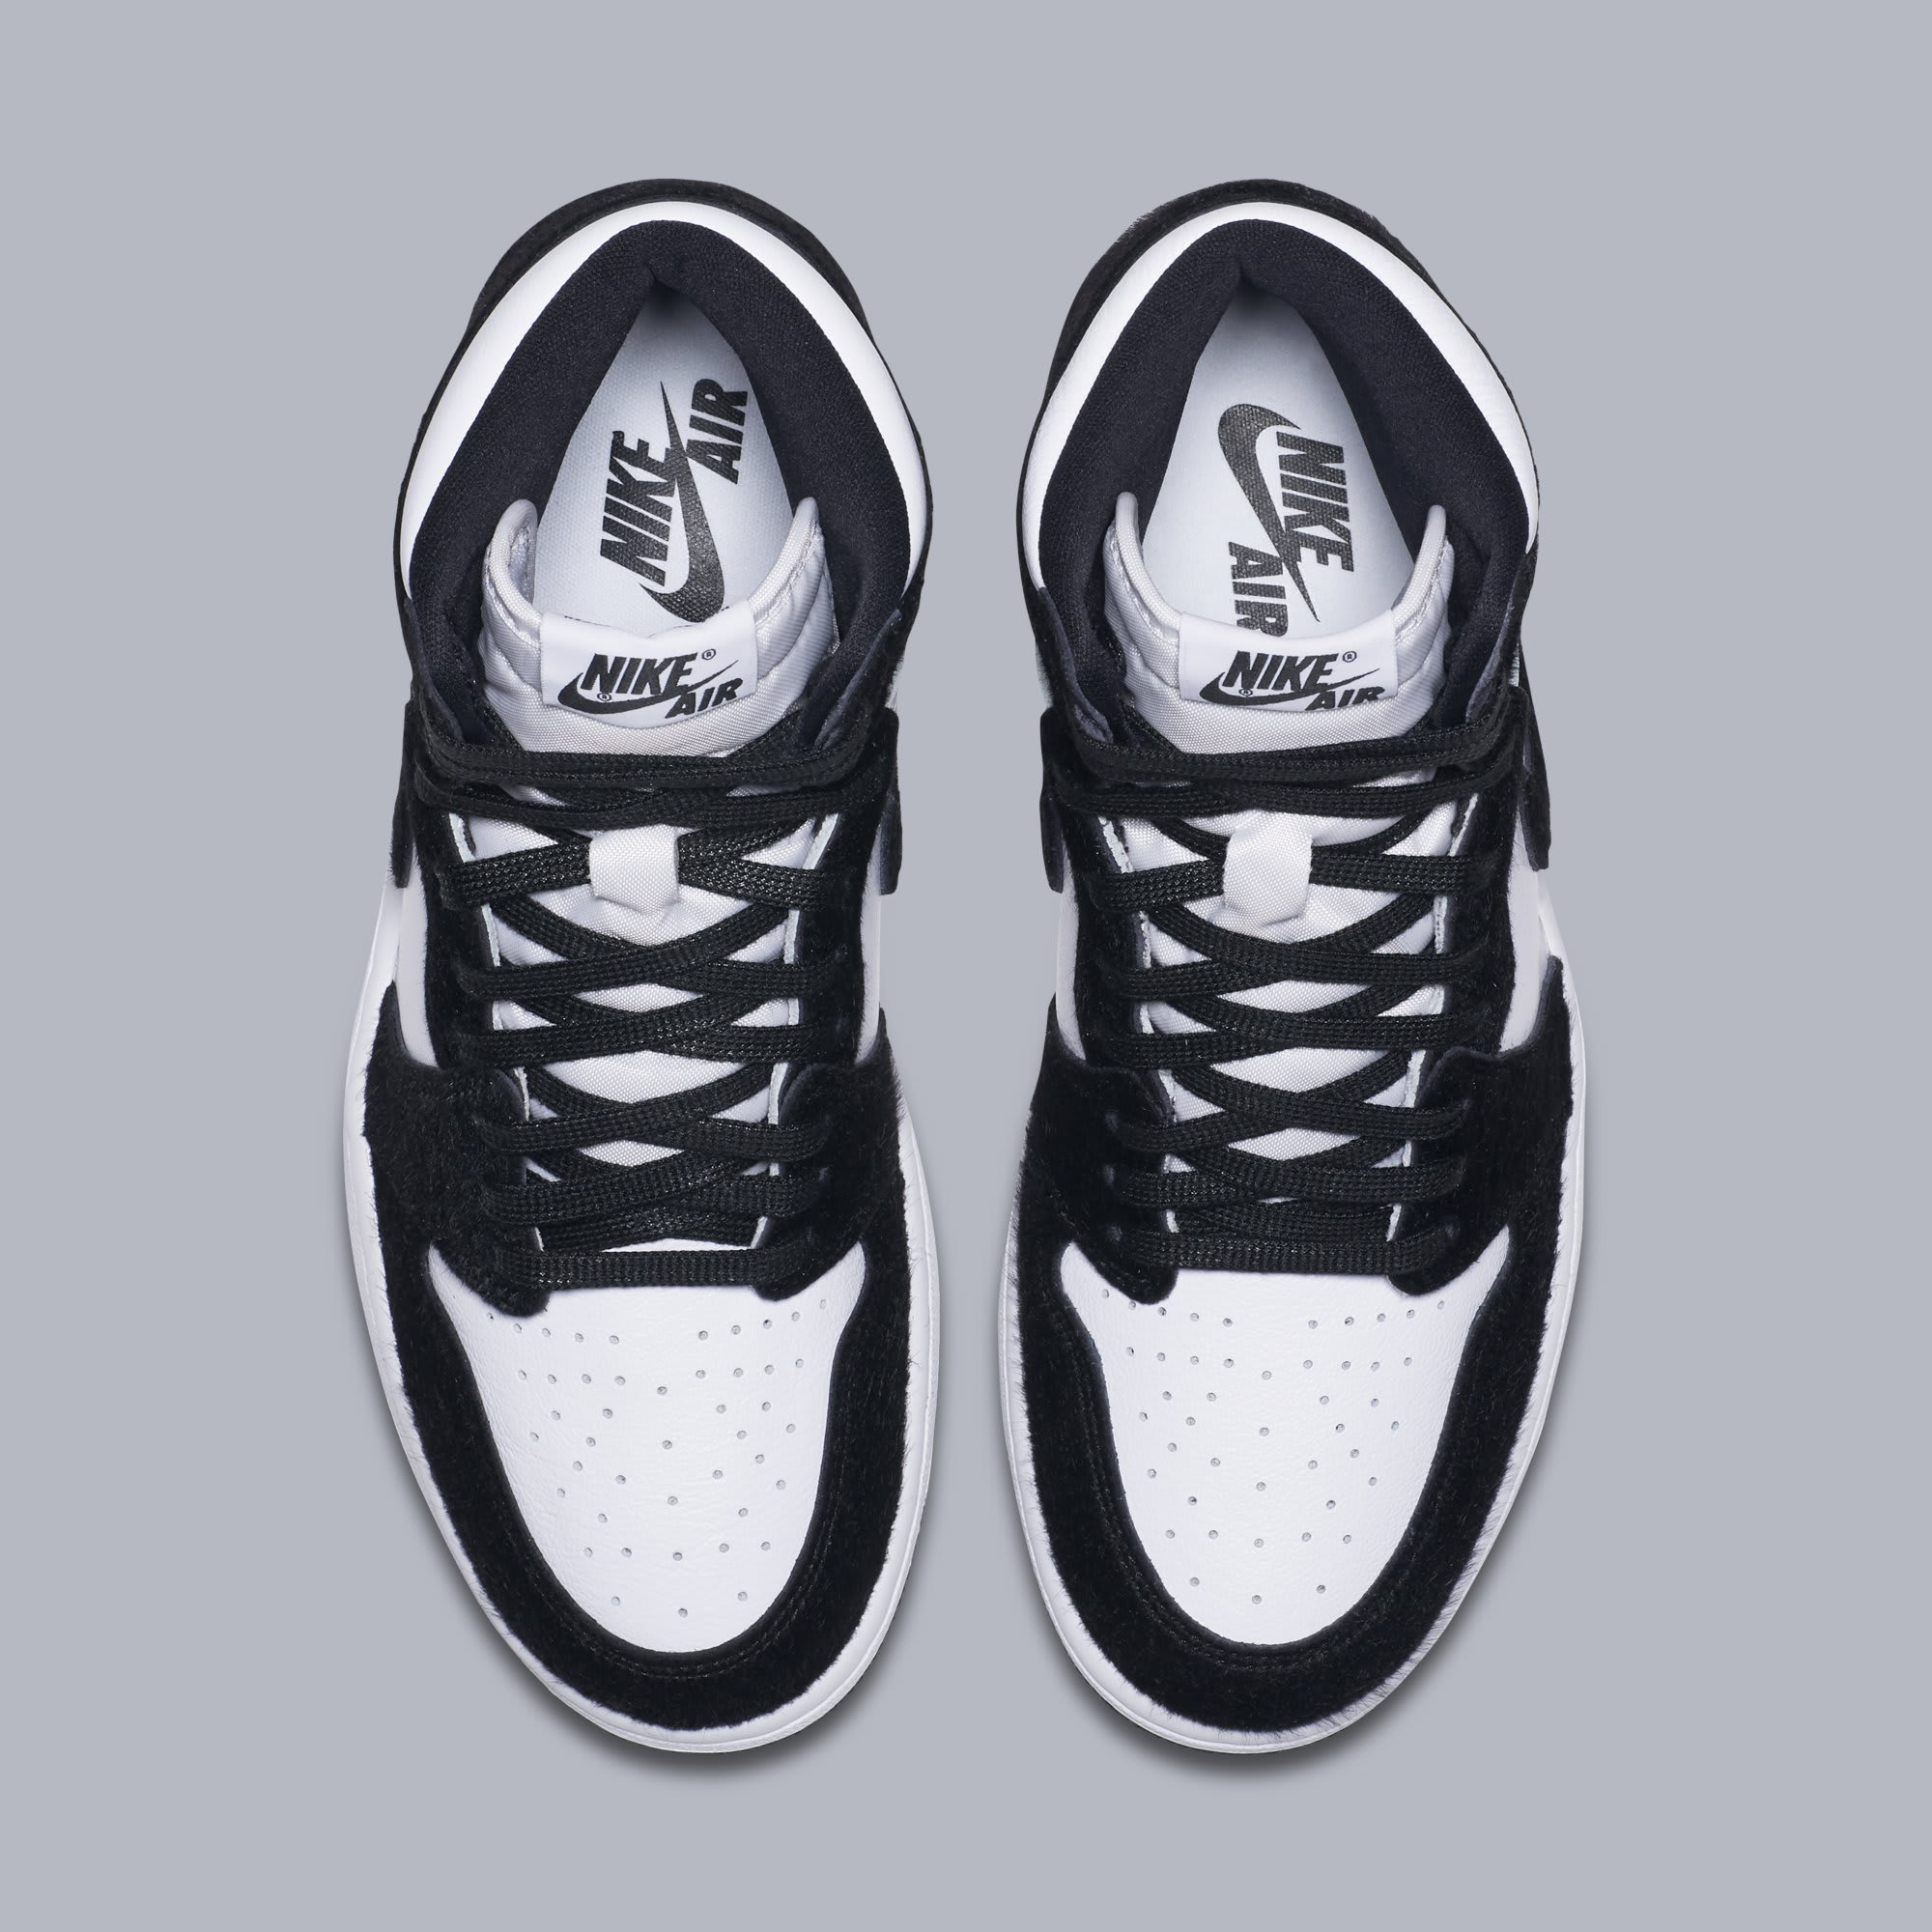 be1c7e60c34797 Air Jordan 1 High OG  quot Twist quot  Releases On Friday